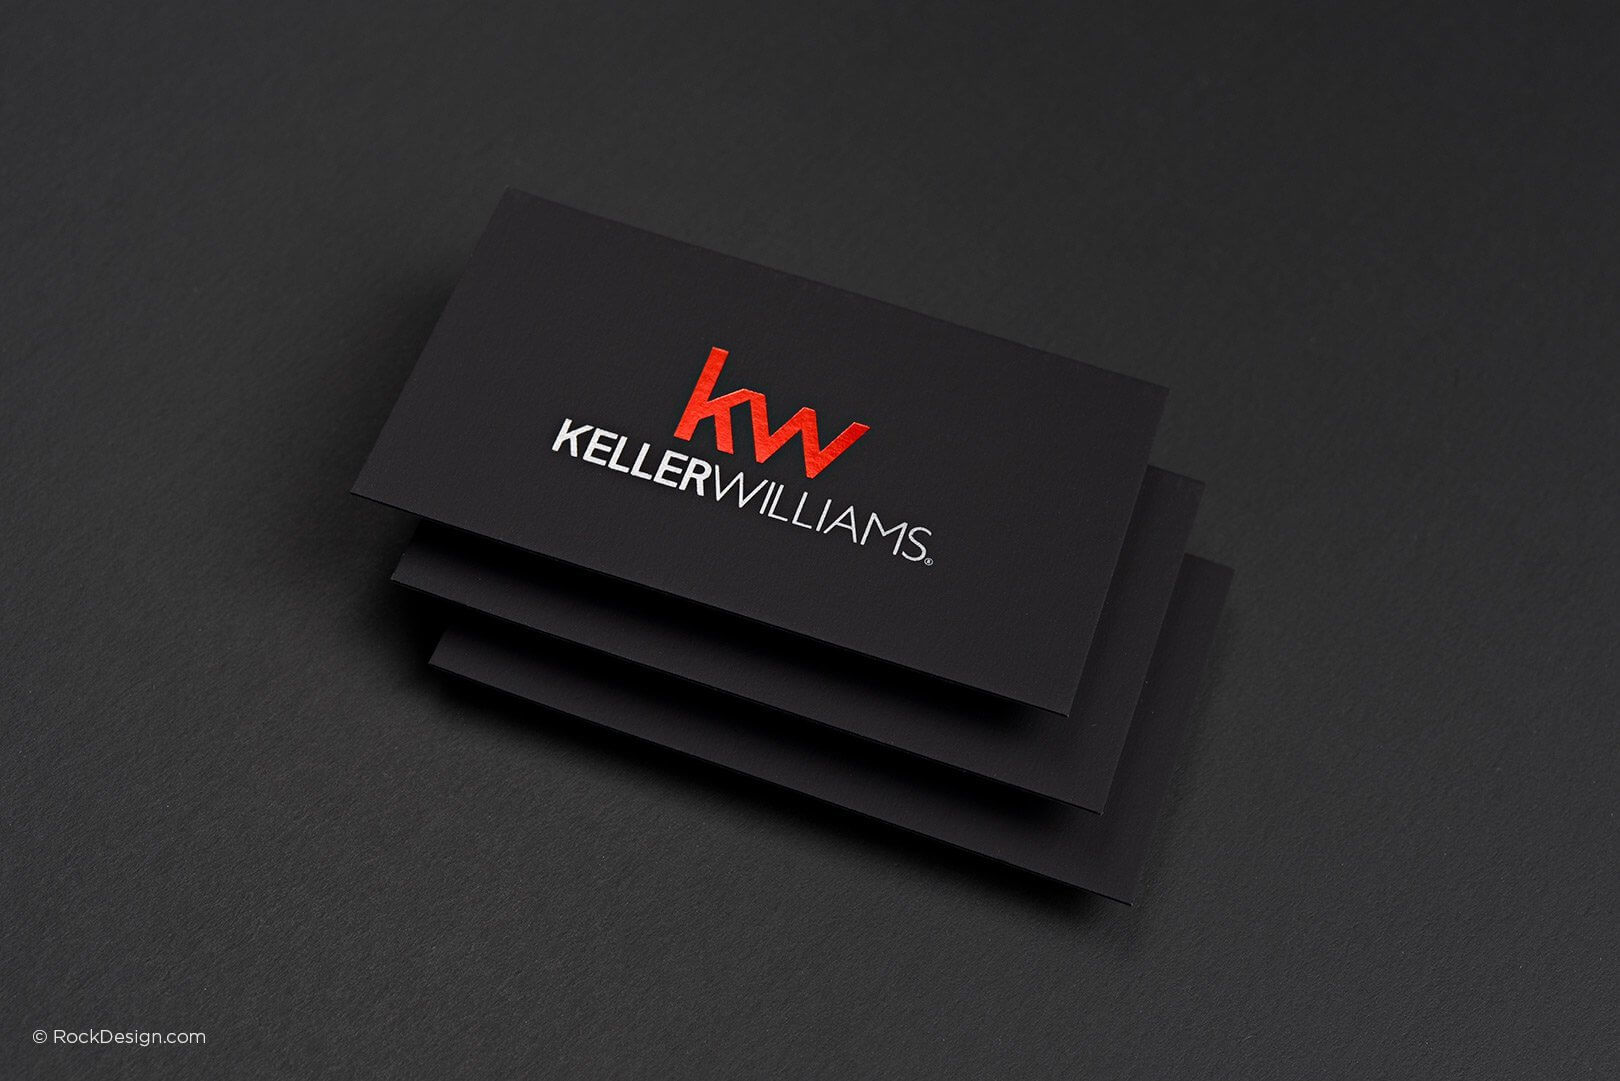 Free Keller Williams Business Card Template With Print In Keller Williams Business Card Templates